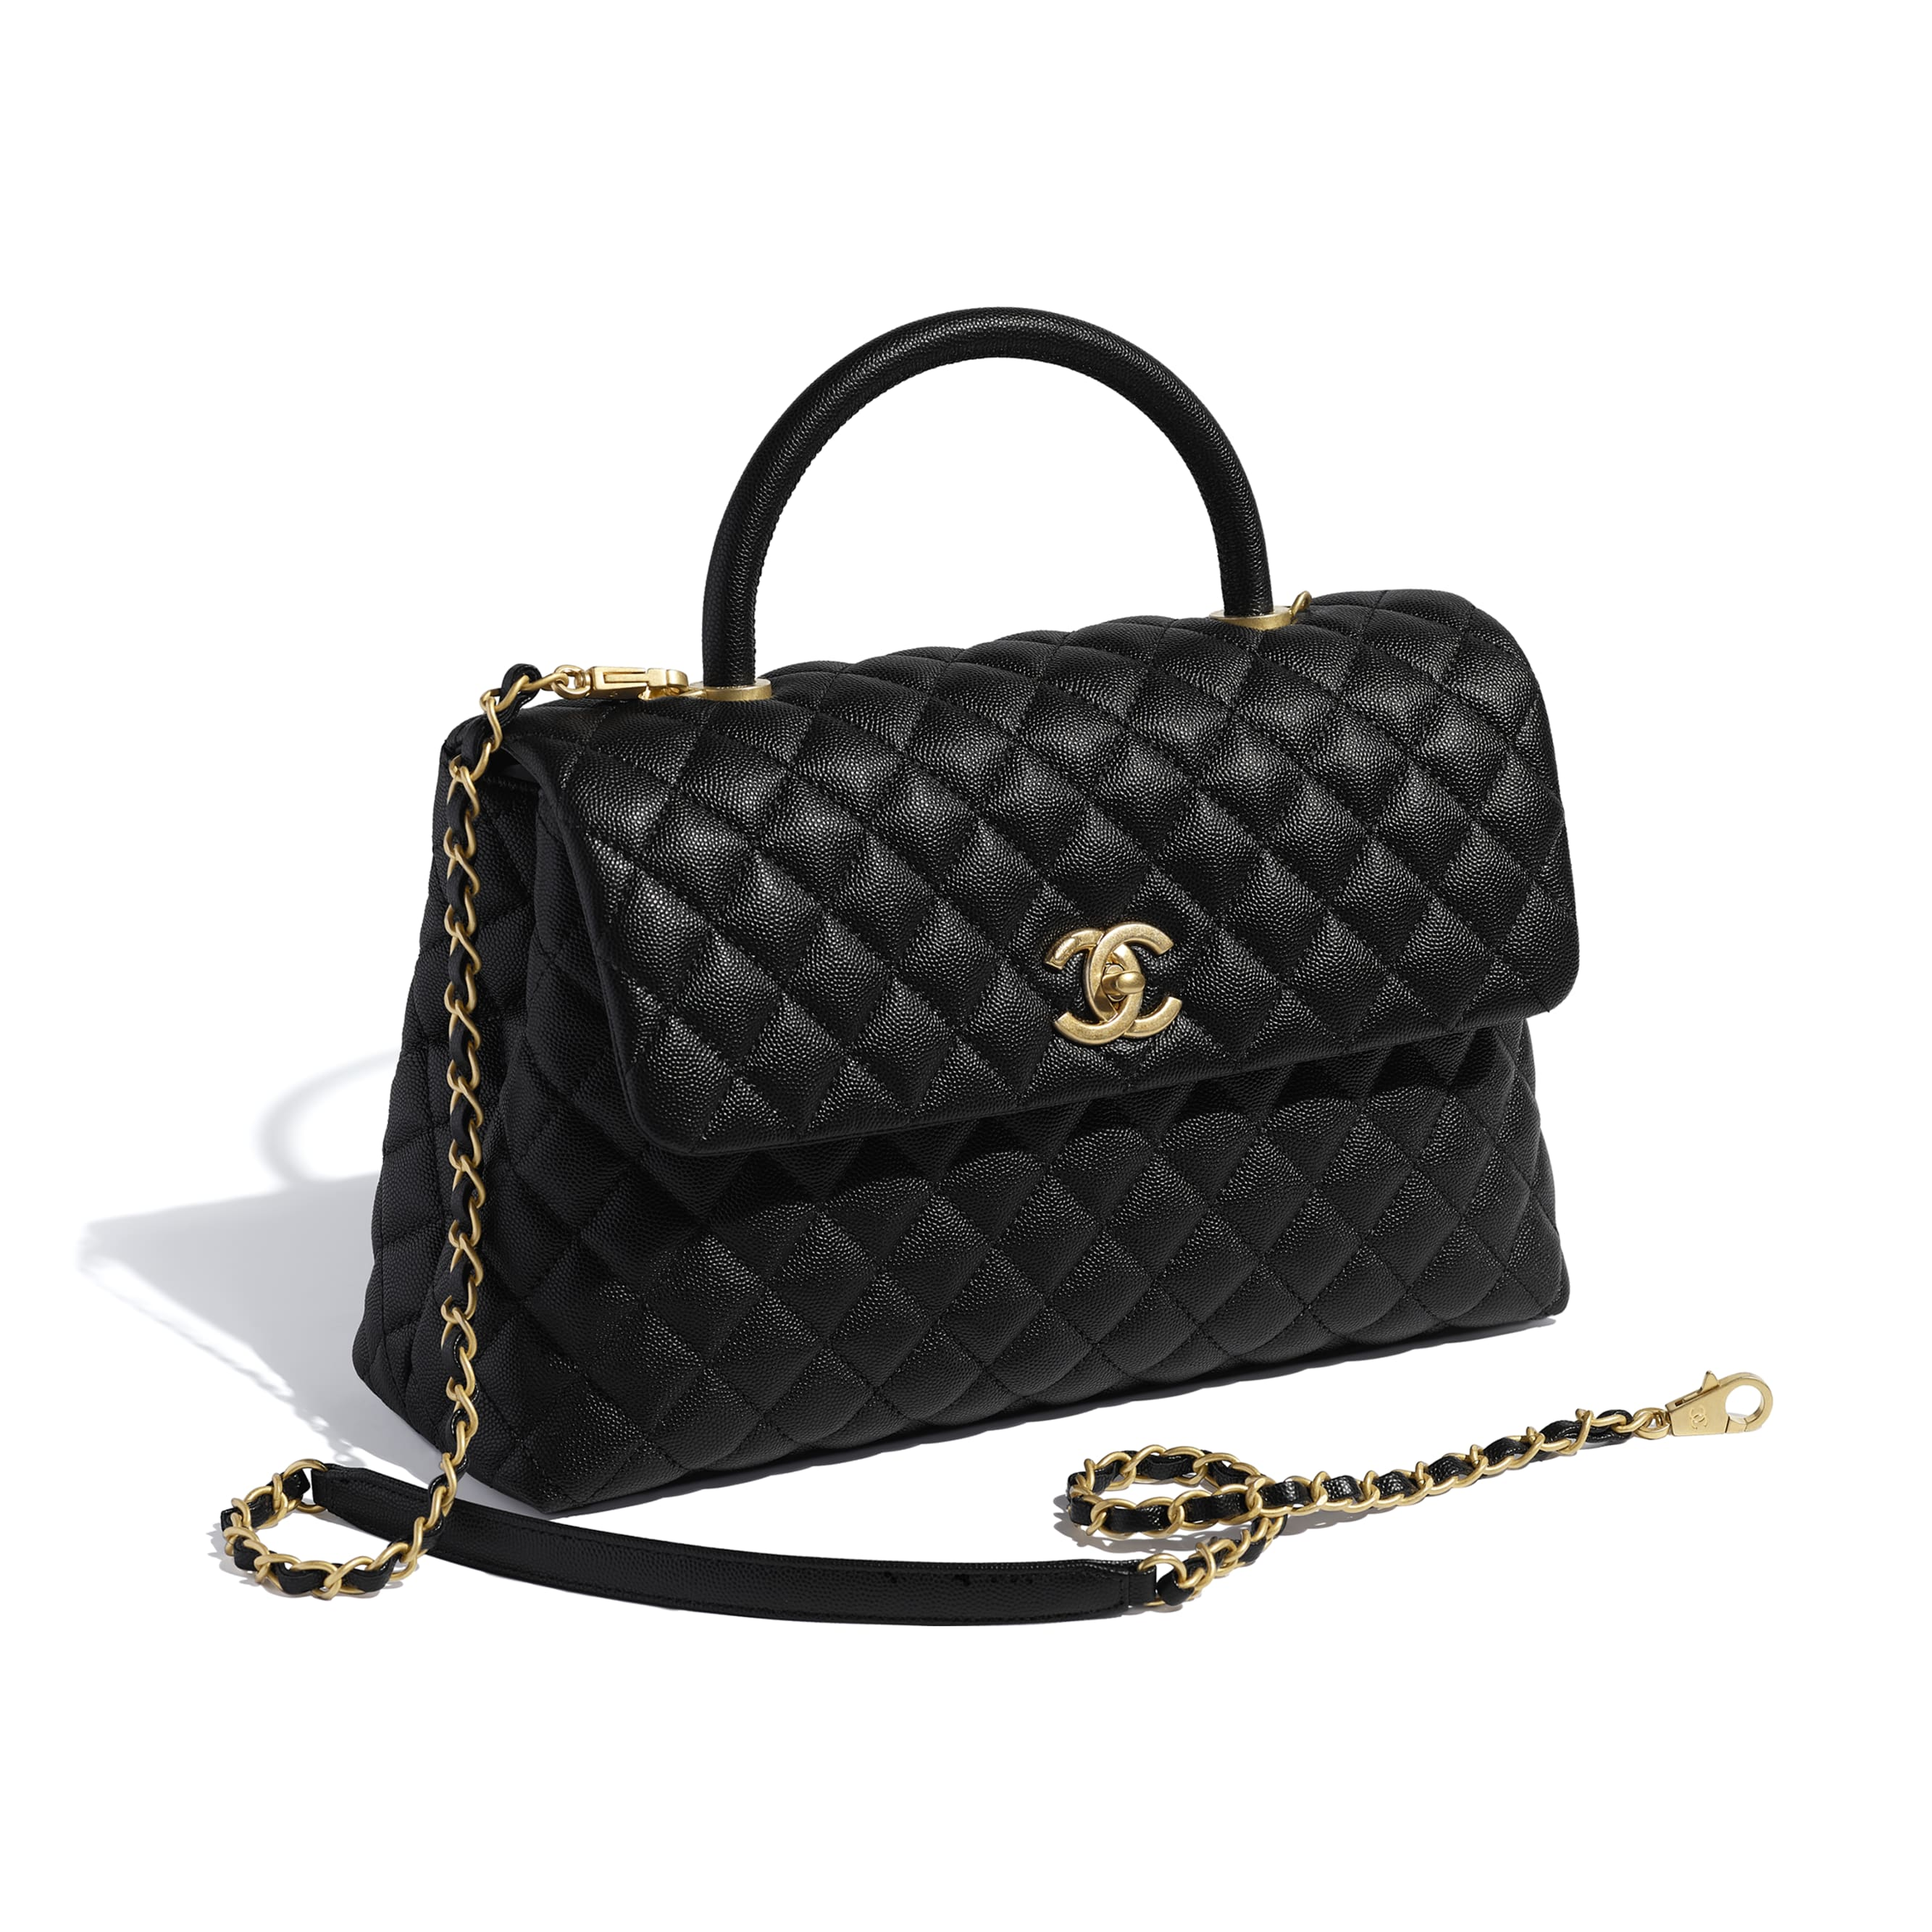 Large Flap Bag With Top Handle - Black - Grained Calfskin & Gold-Tone Metal - Other view - see standard sized version